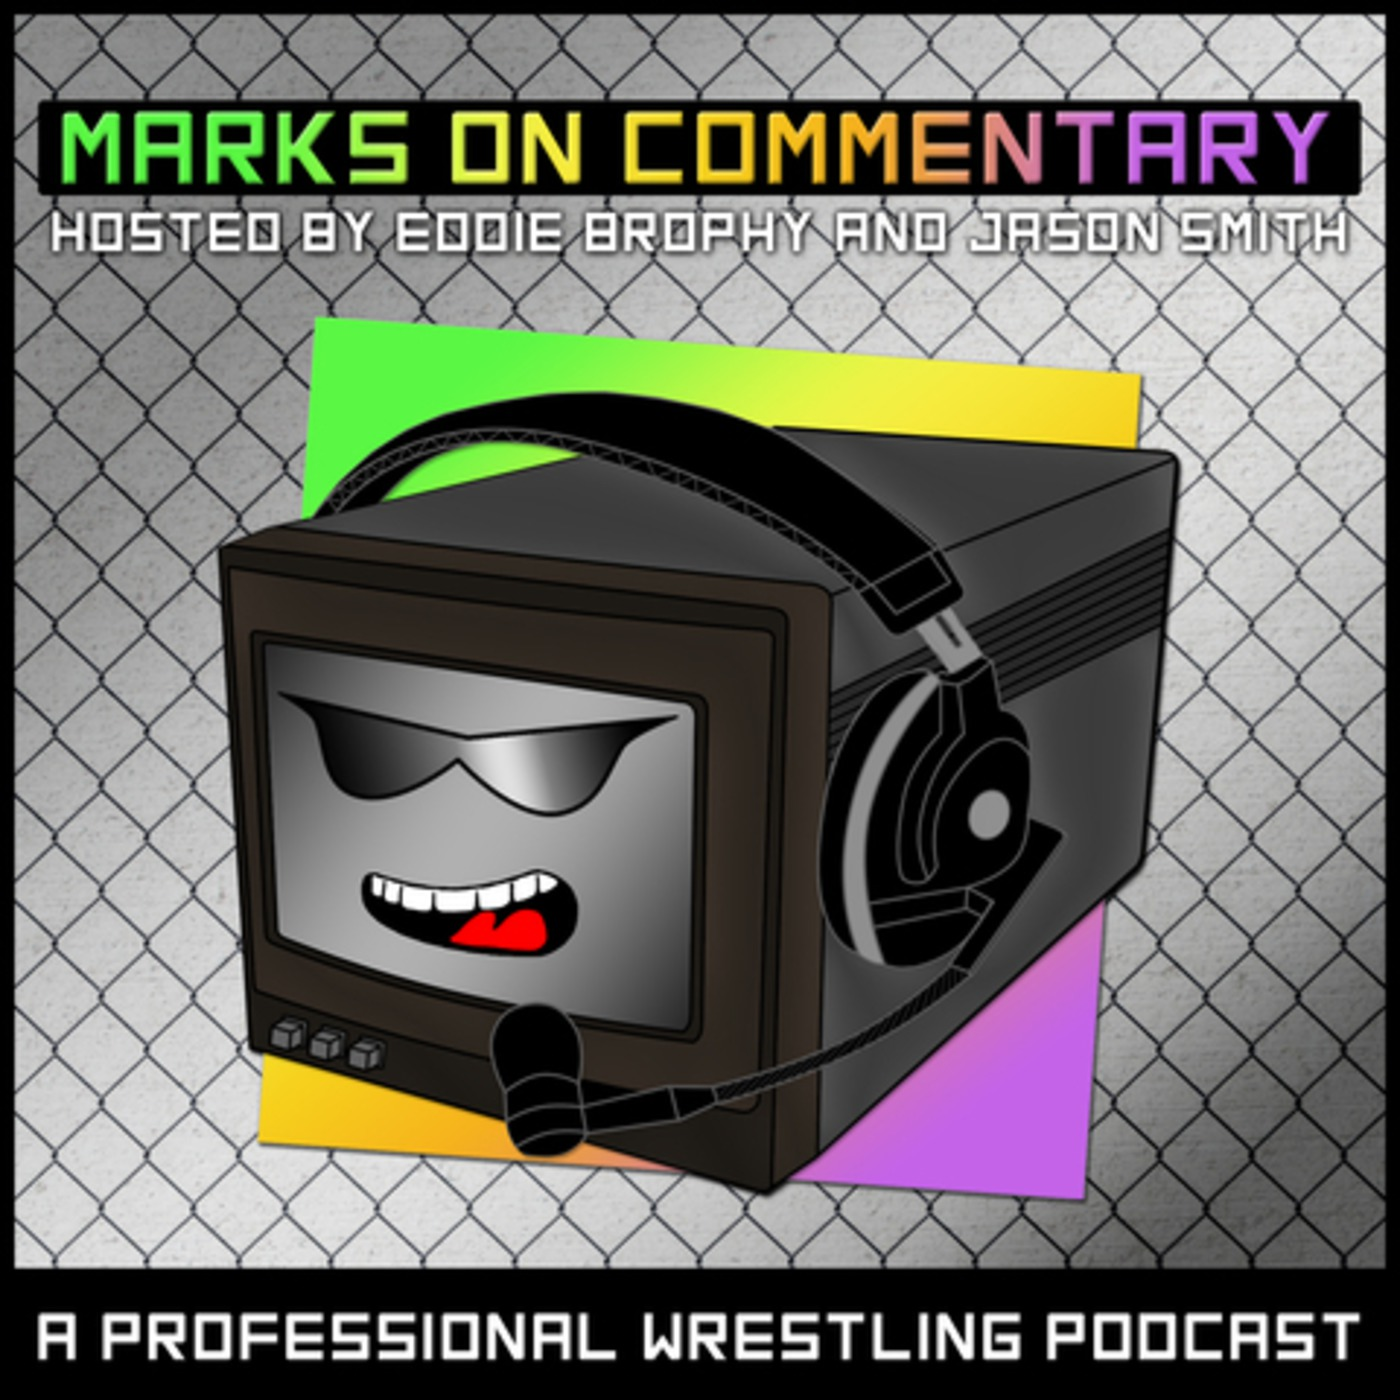 Marks on Commentary - A Pro Wrestling Podcast